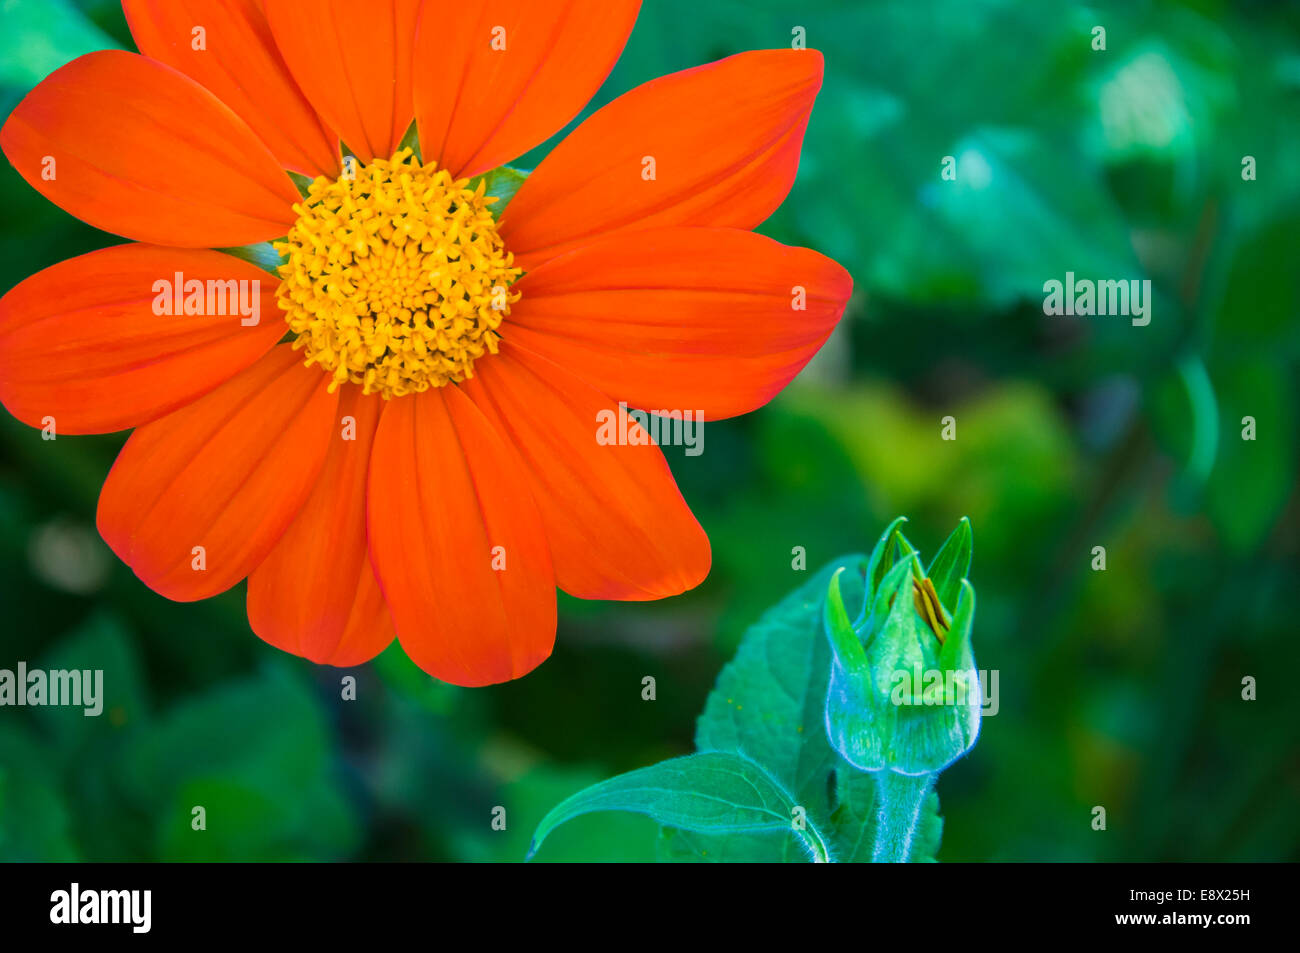 Bright reddish-orange and yellow single flower partnered with a large bud of the same flower. - Stock Image